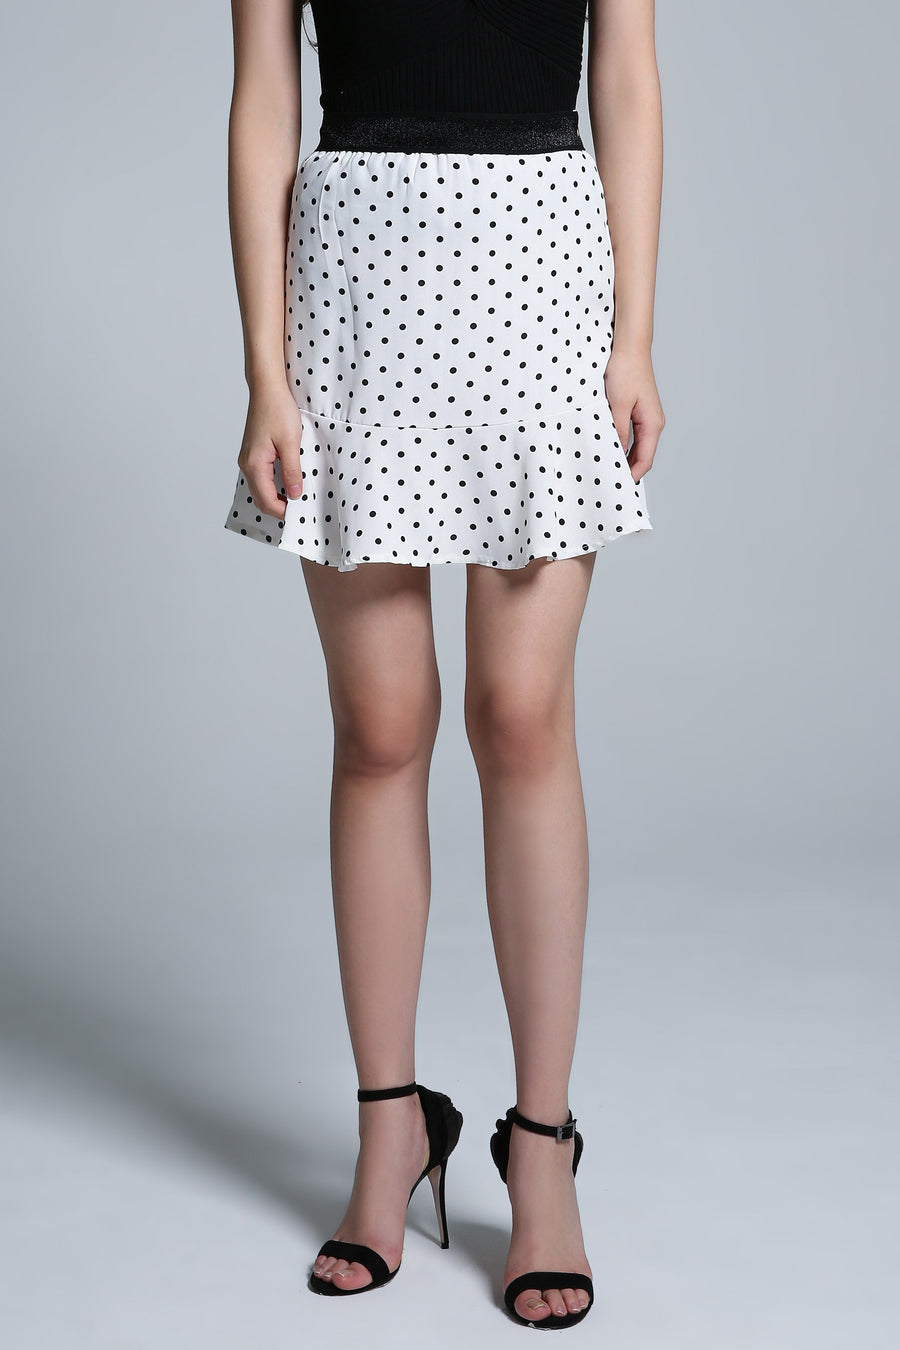 Polka Dot Skirt Pant 1660 - ample-couture